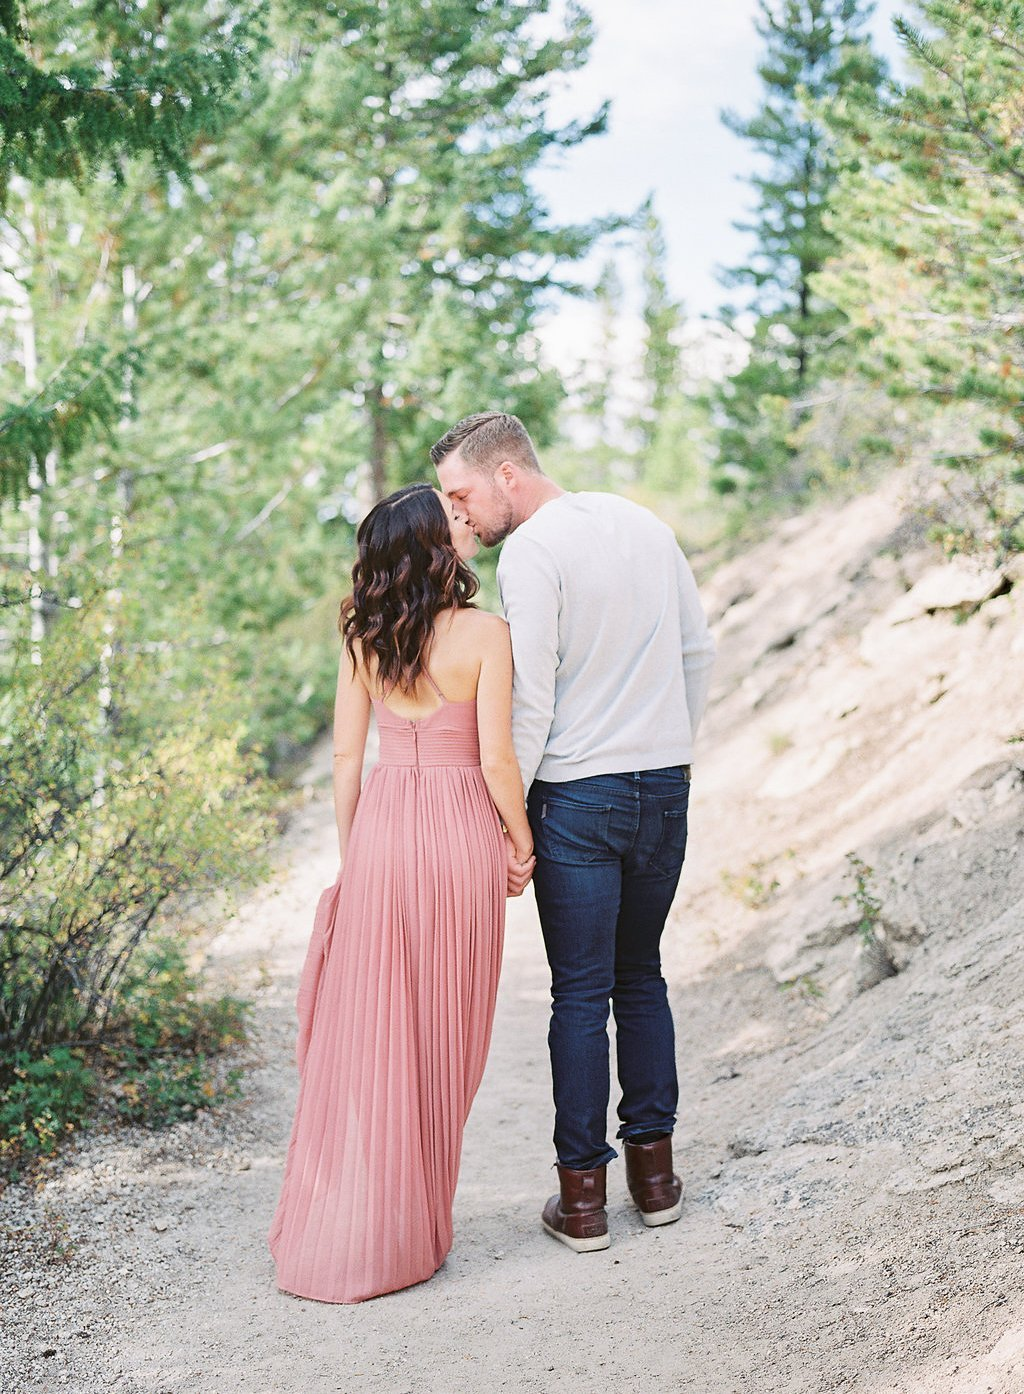 Lake Dillon Colorado Engagement Photography bride and groom walking in the trees kissing